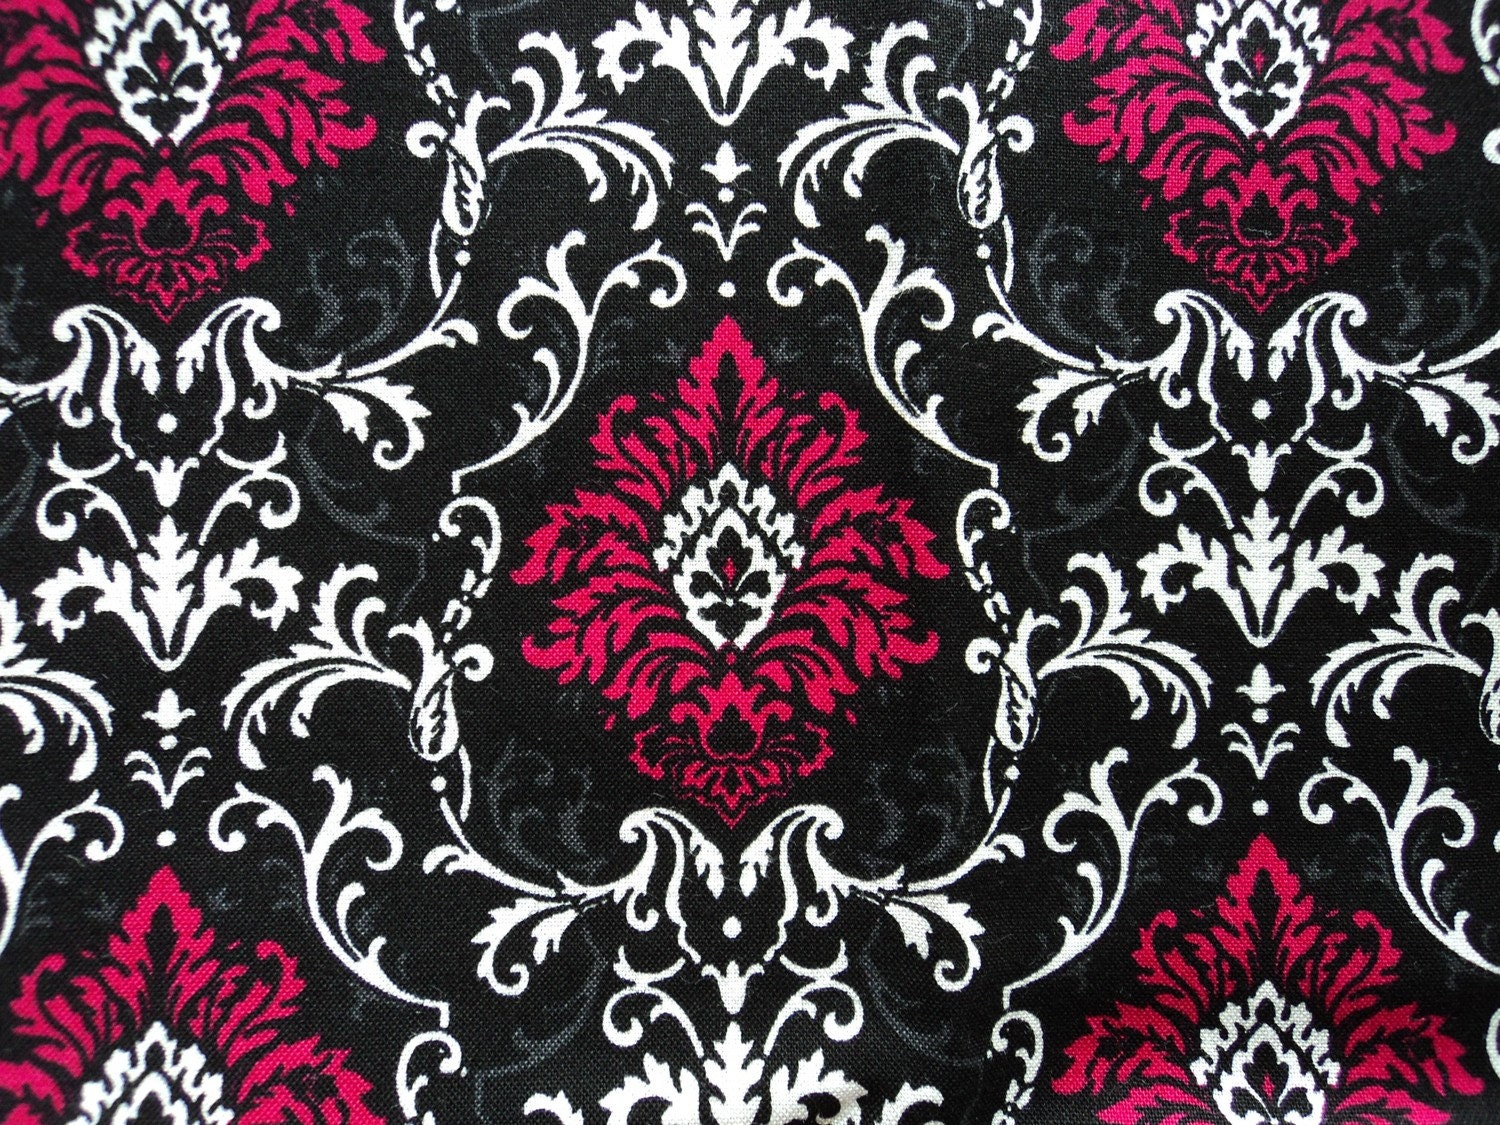 Hot Pink Damask Cotton Quilting Fabric Last 1 Yard